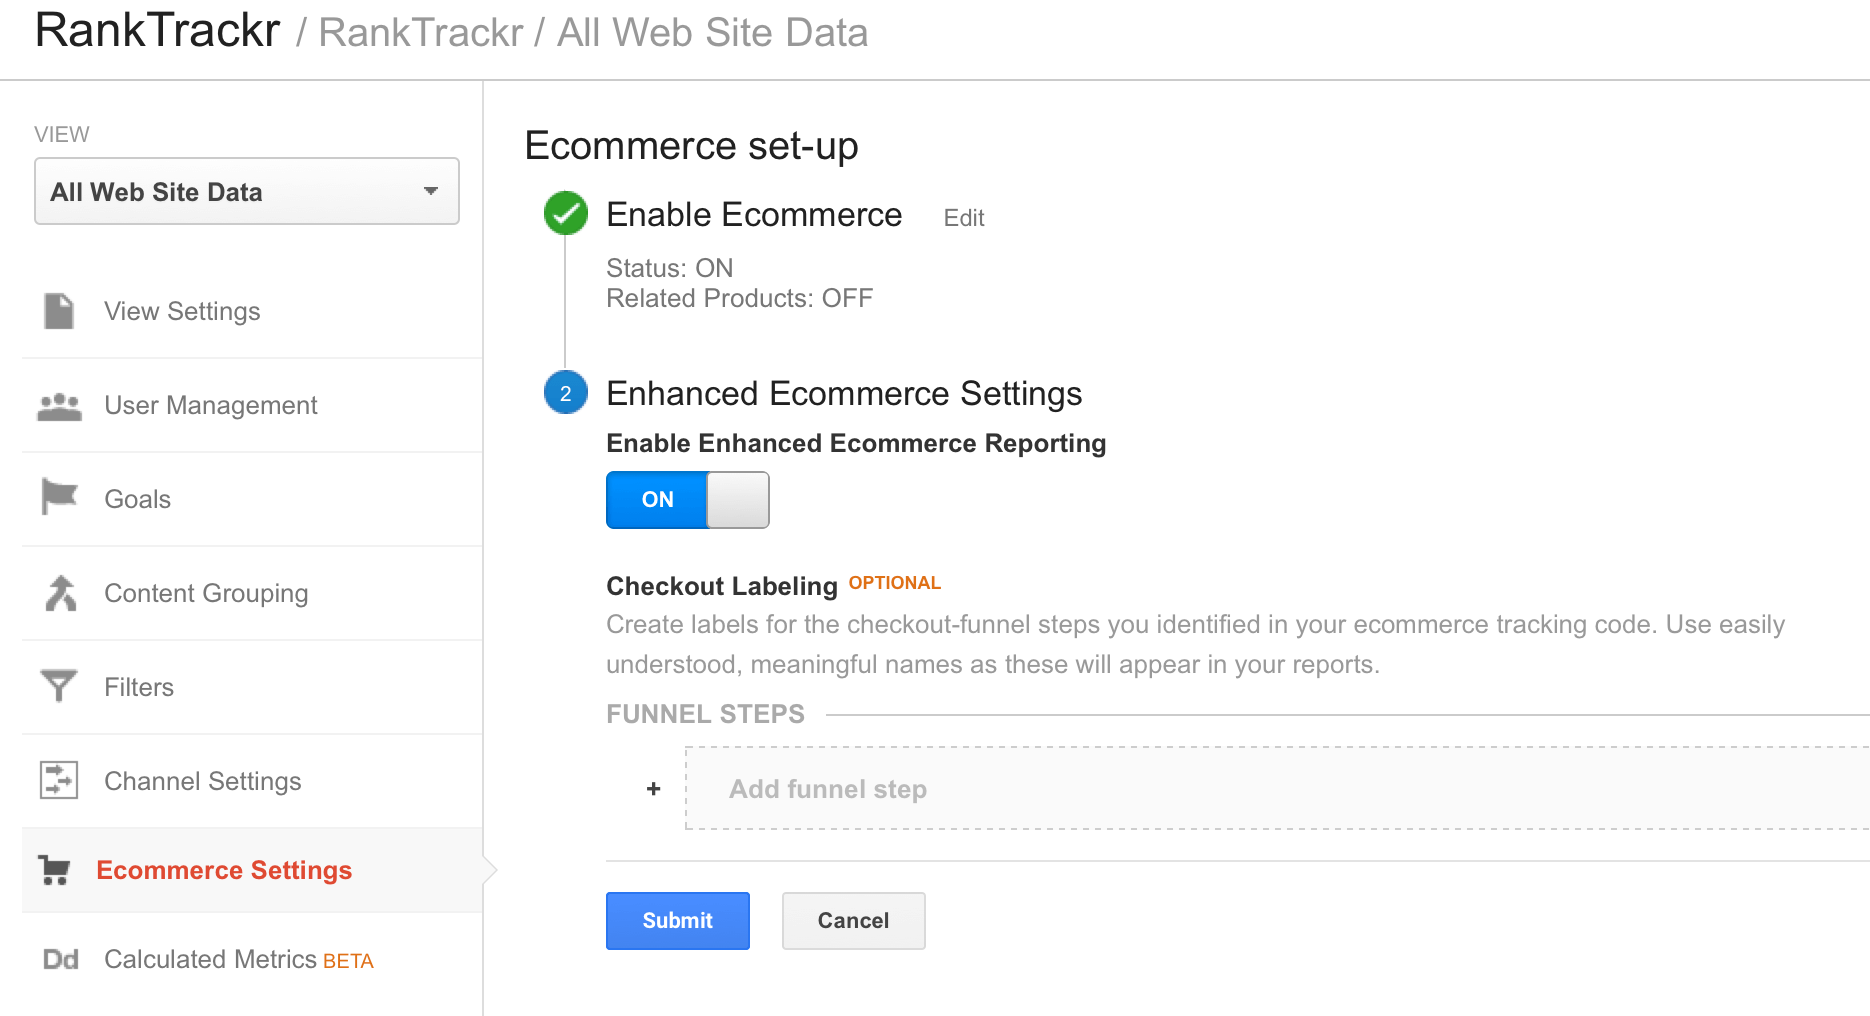 enhanced ecommerce settings